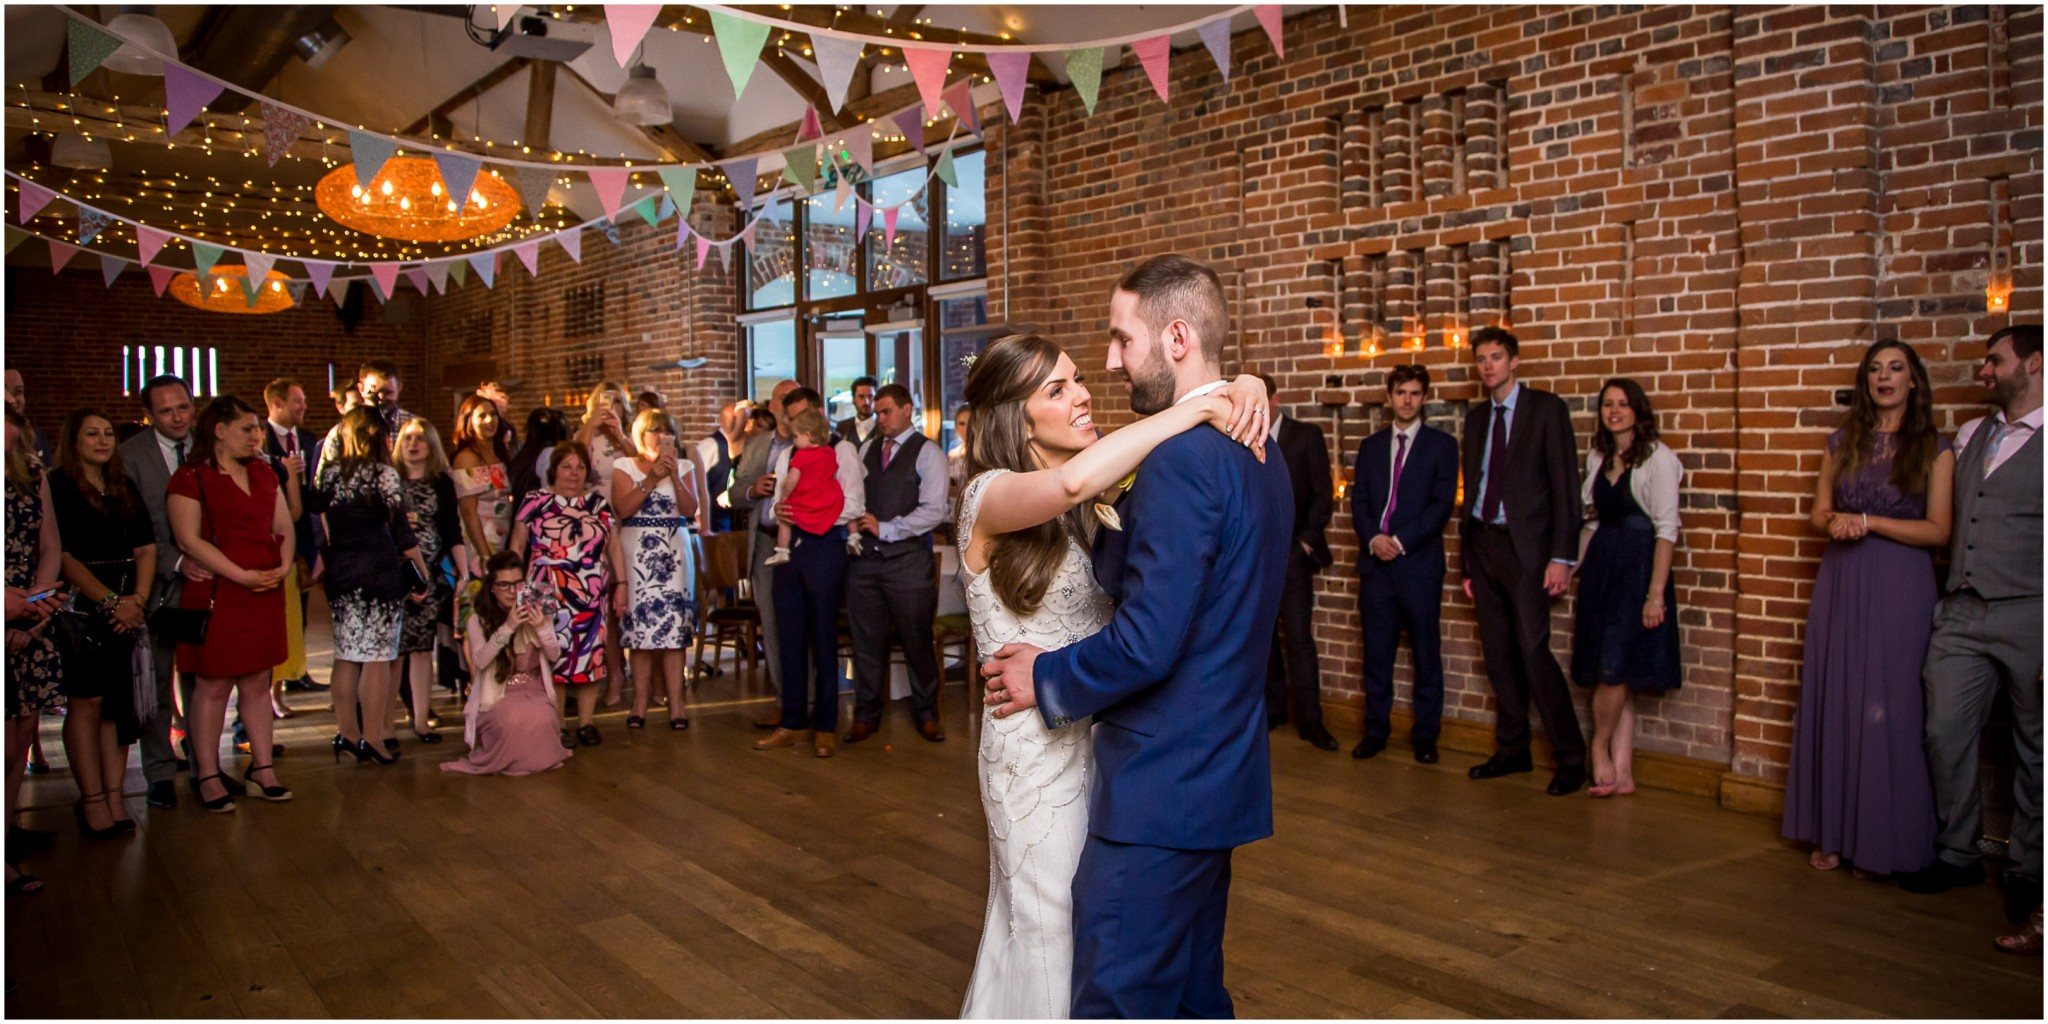 Wasing Park Wedding Photography Bride & Groom's first dance